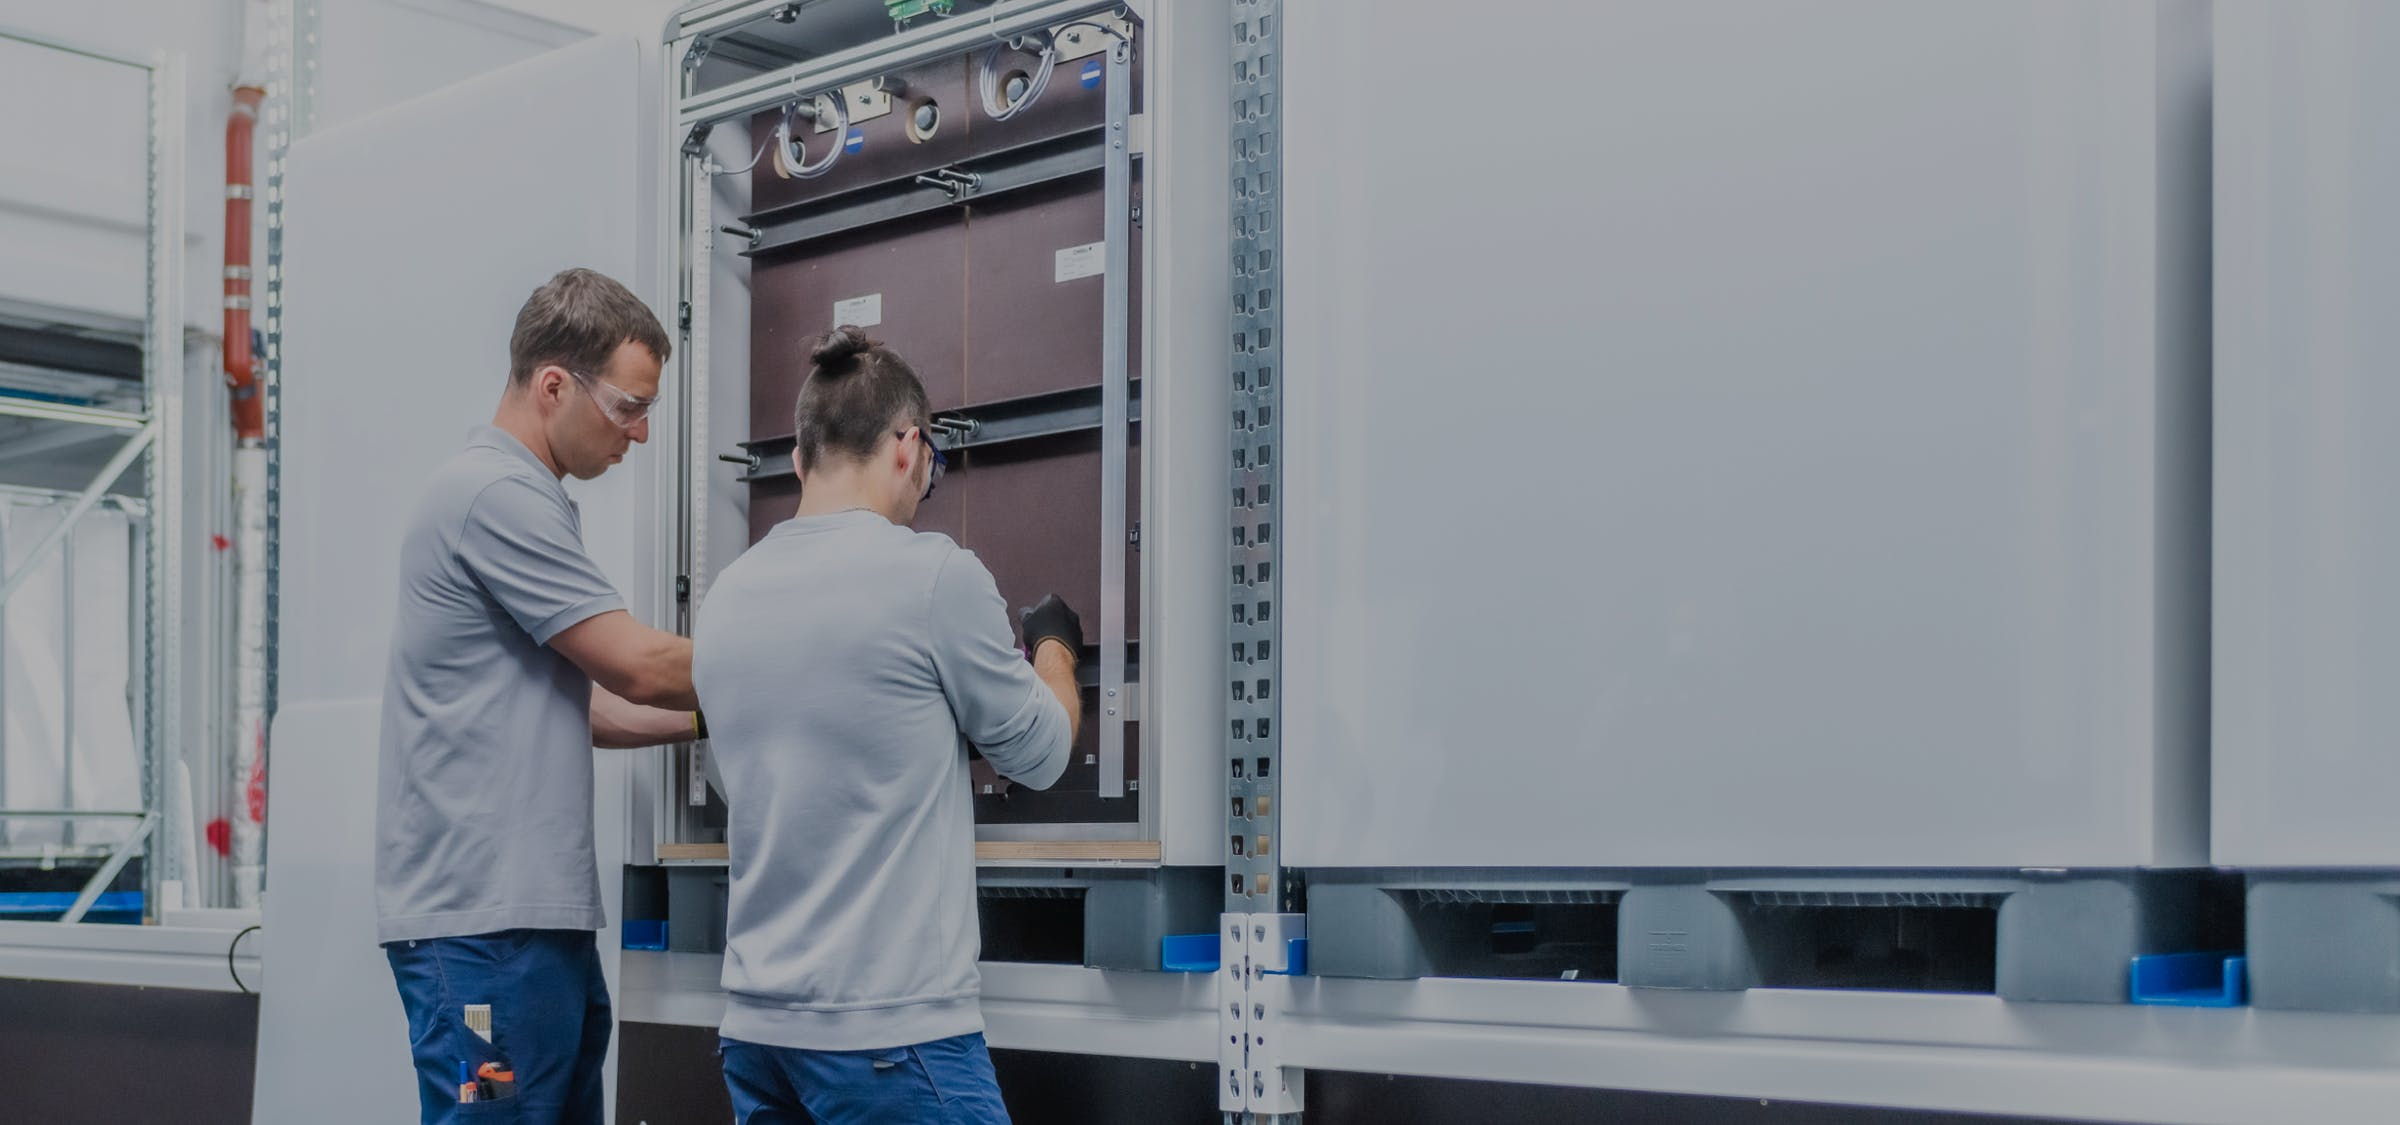 A sneak peek at working life with the CMBlu organic flow battery company.